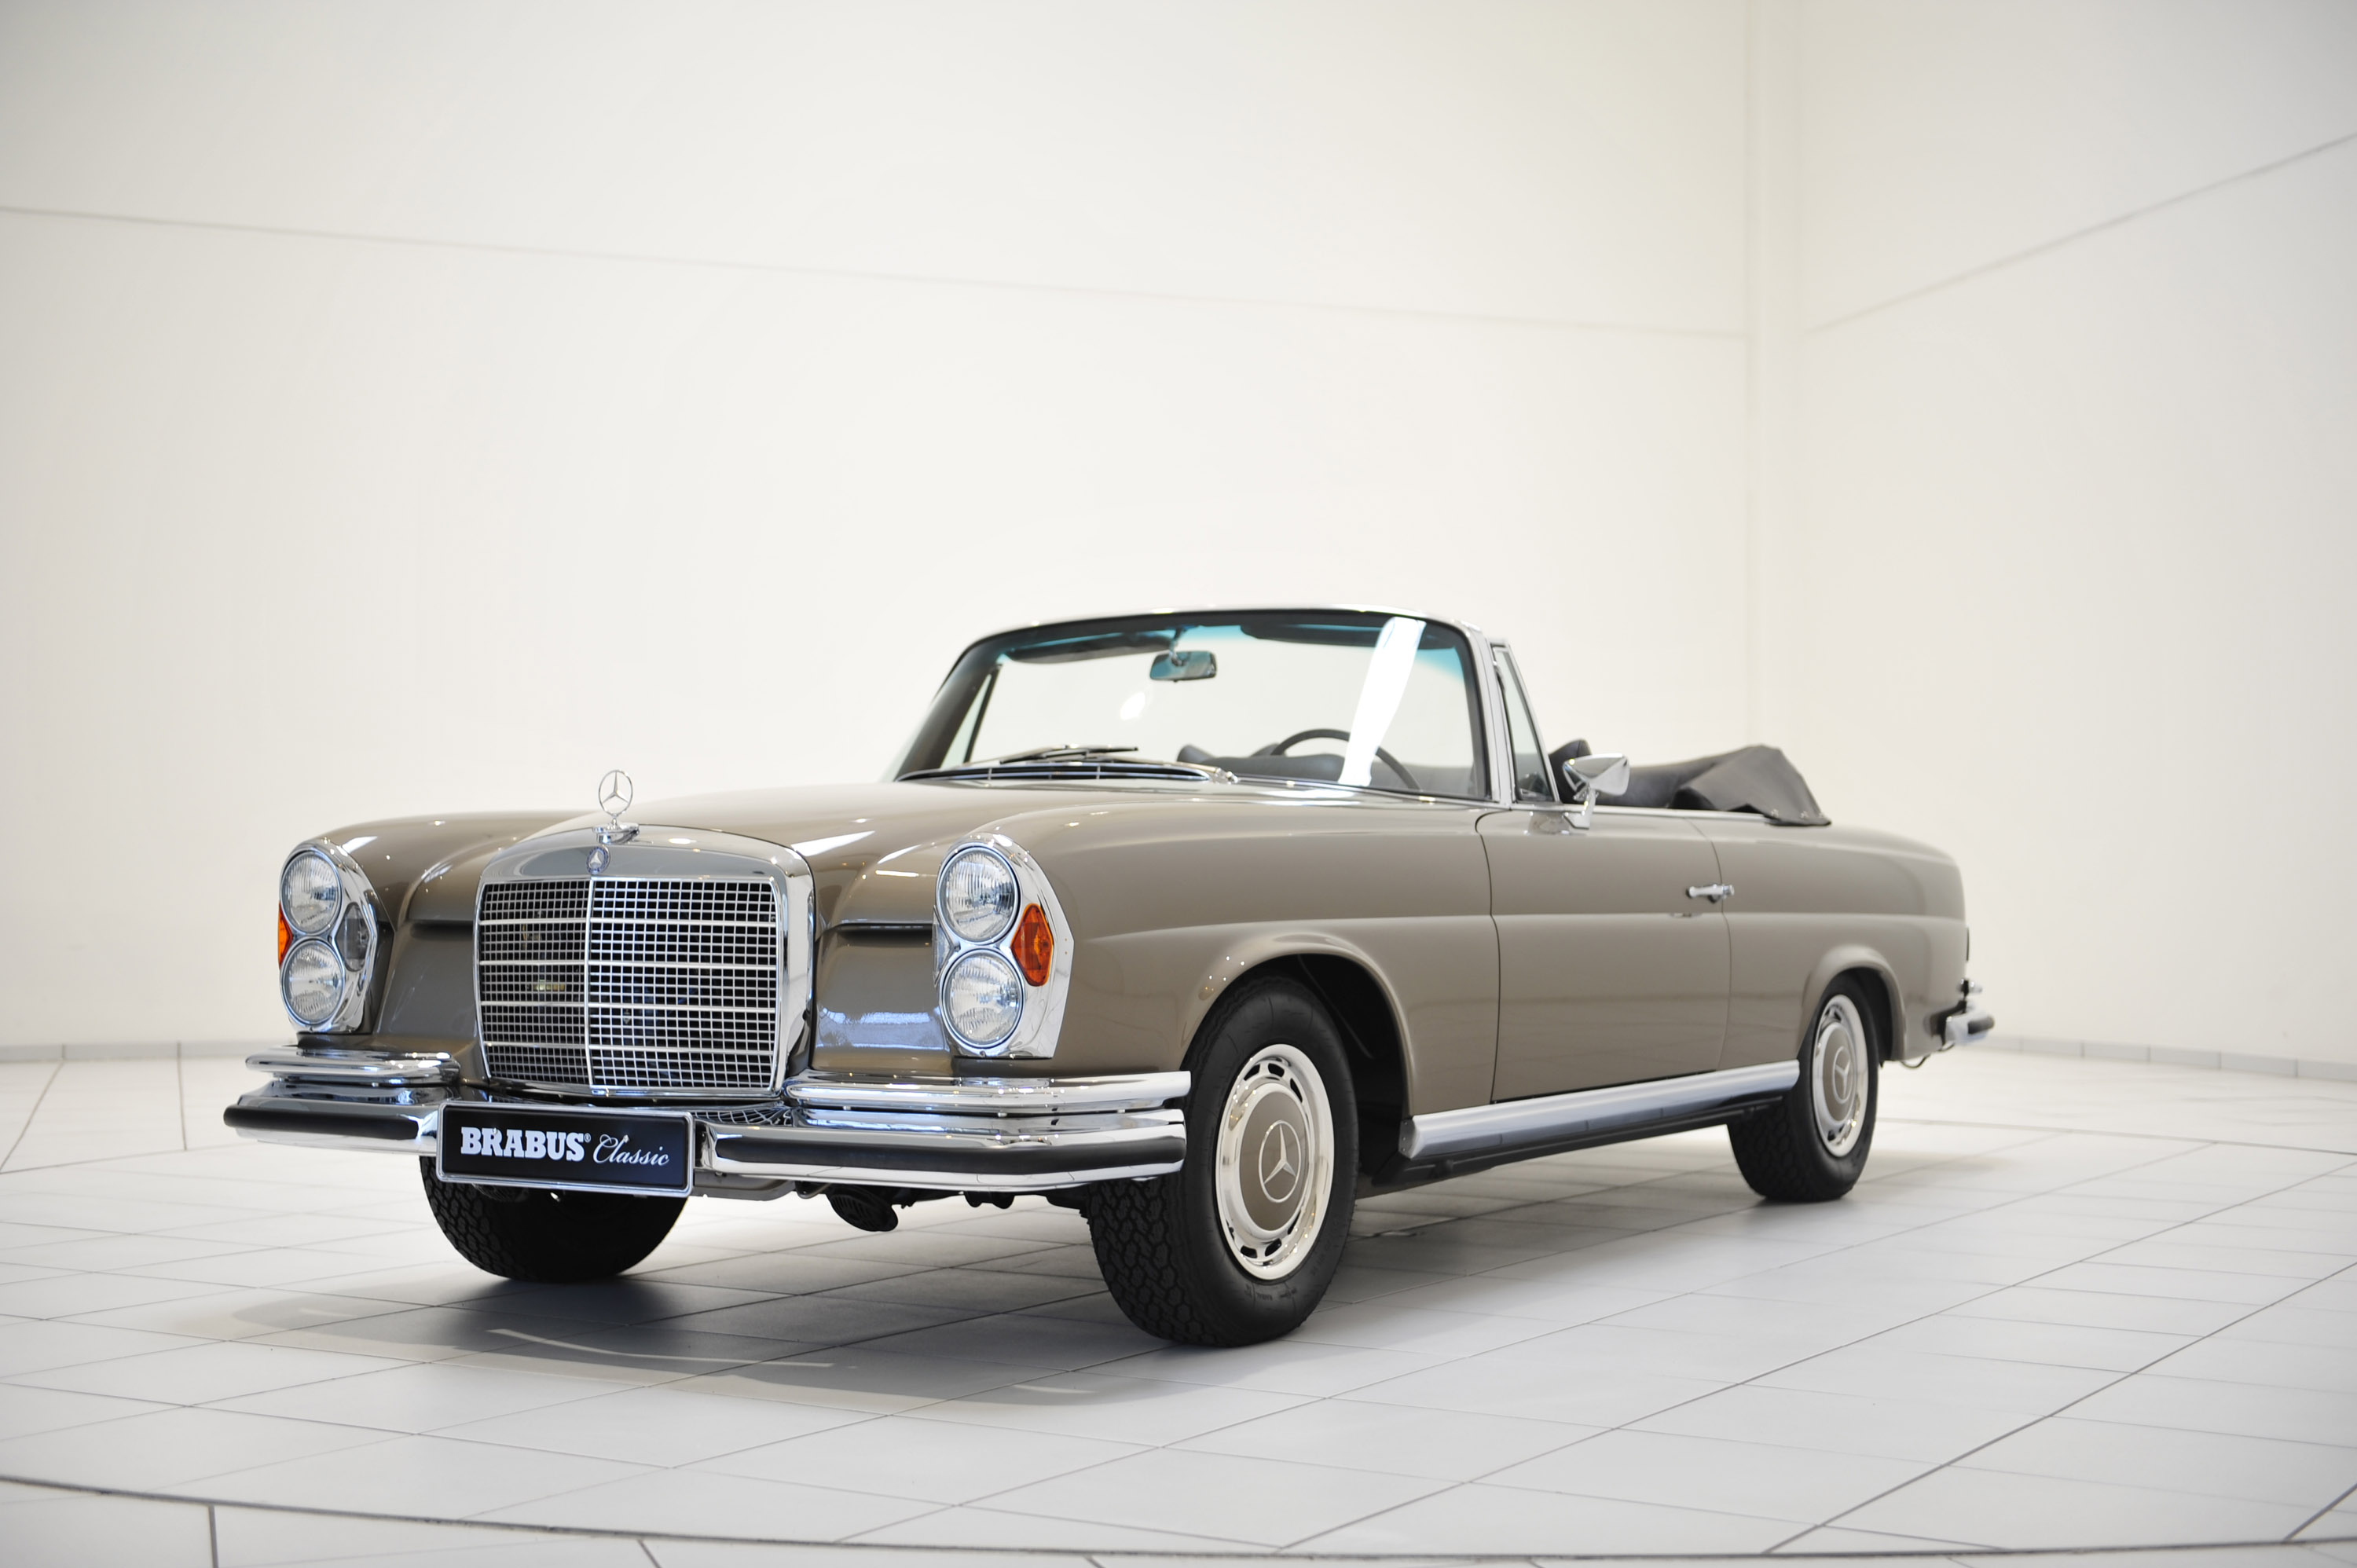 brabus classic mercedes 280 se cabriolet w111 picture 104976. Black Bedroom Furniture Sets. Home Design Ideas